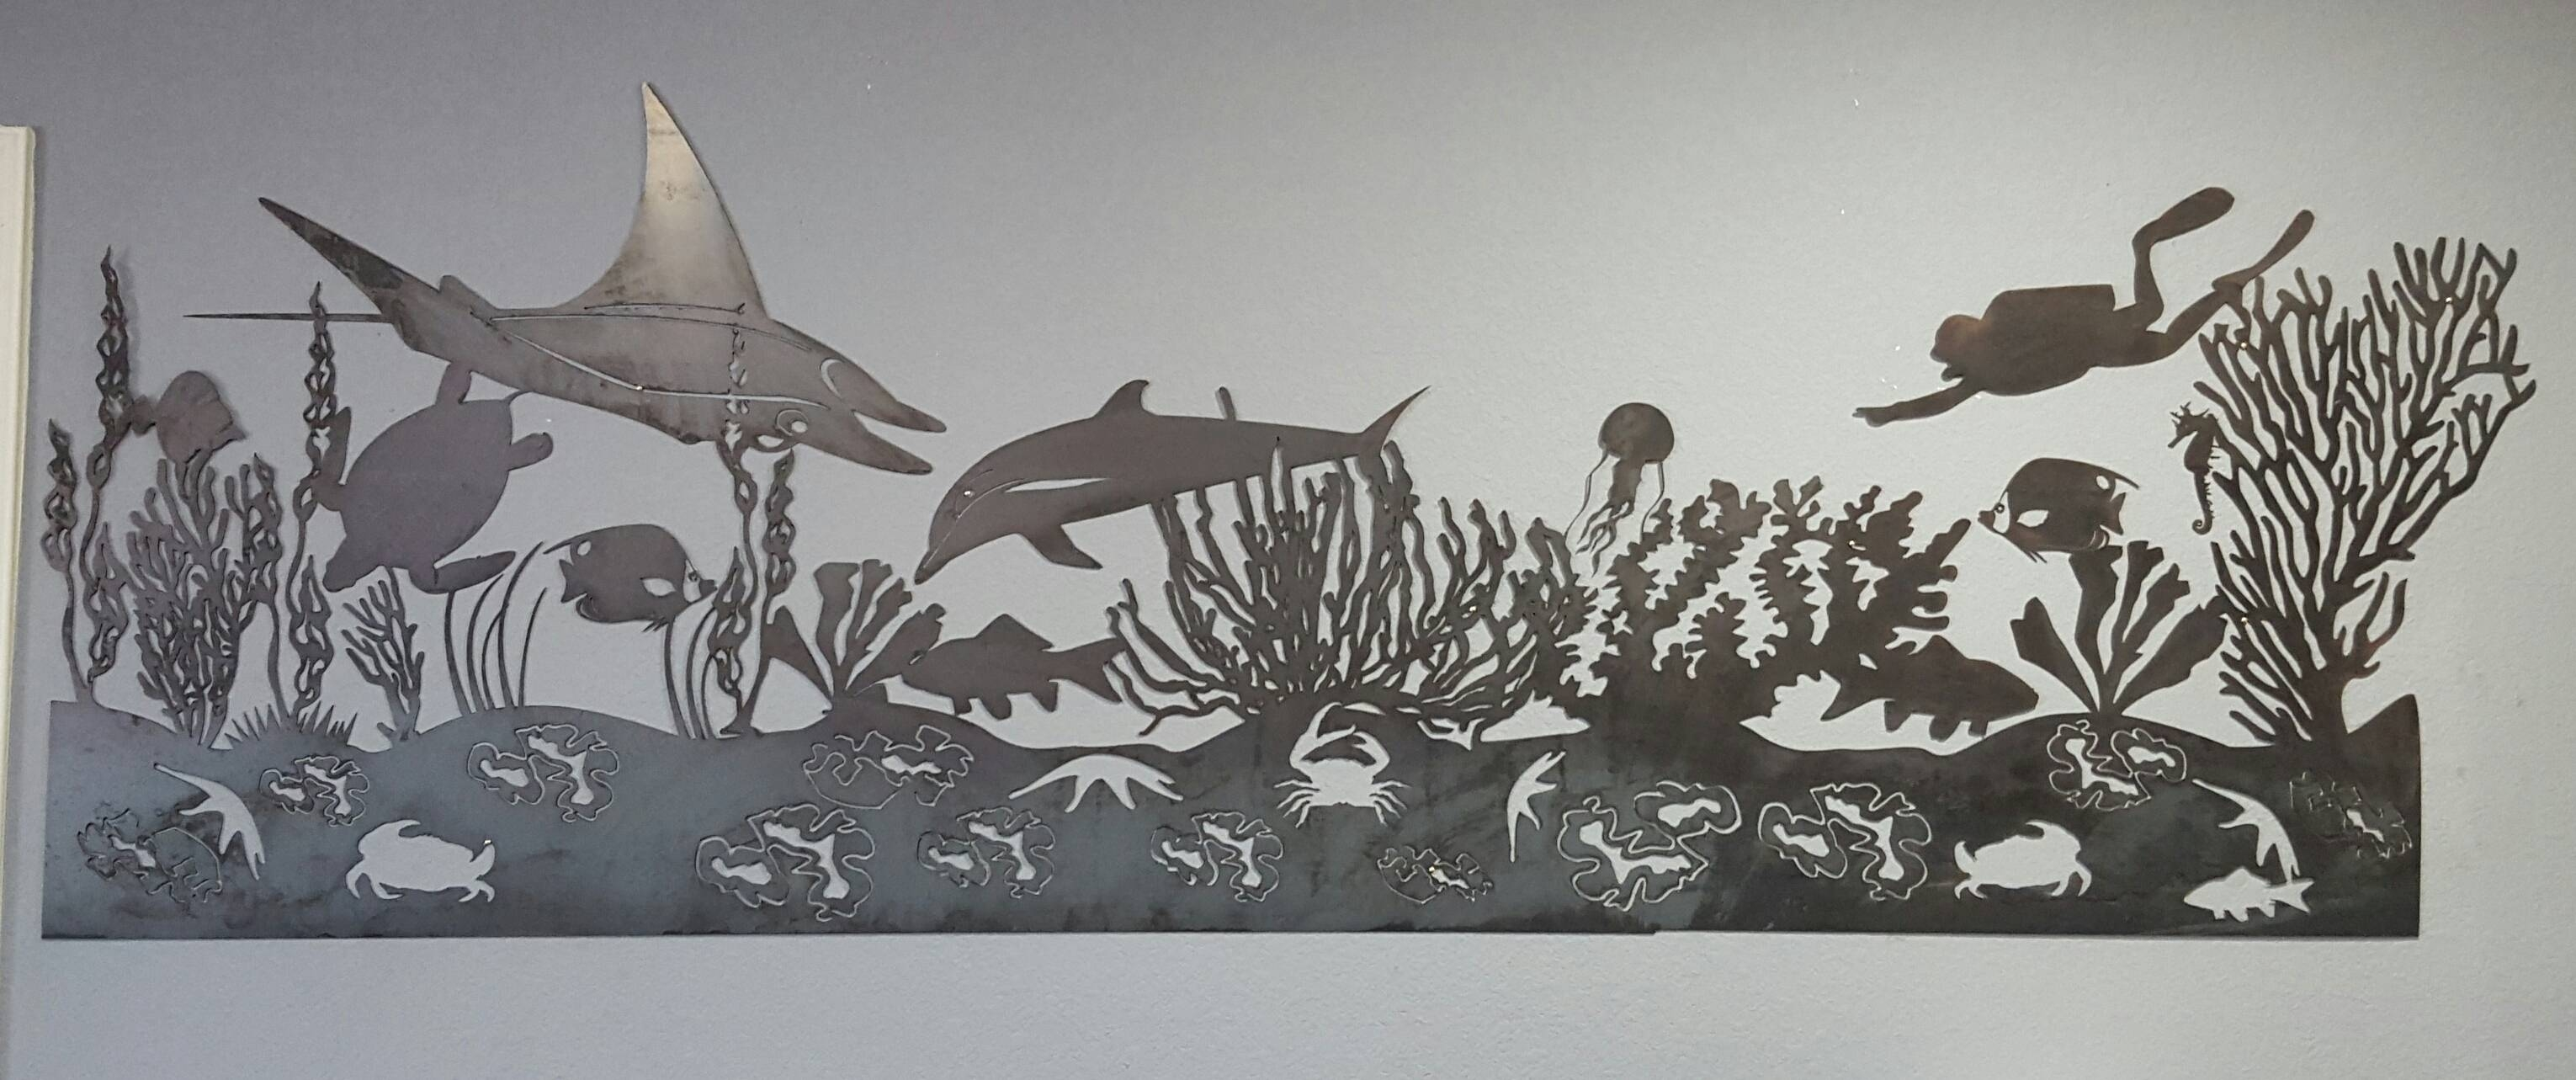 Sea Life Mural Metal Wall Art | Blue Collar Welding Llc Inside Best And Newest Animal Metal Wall Art (View 14 of 20)